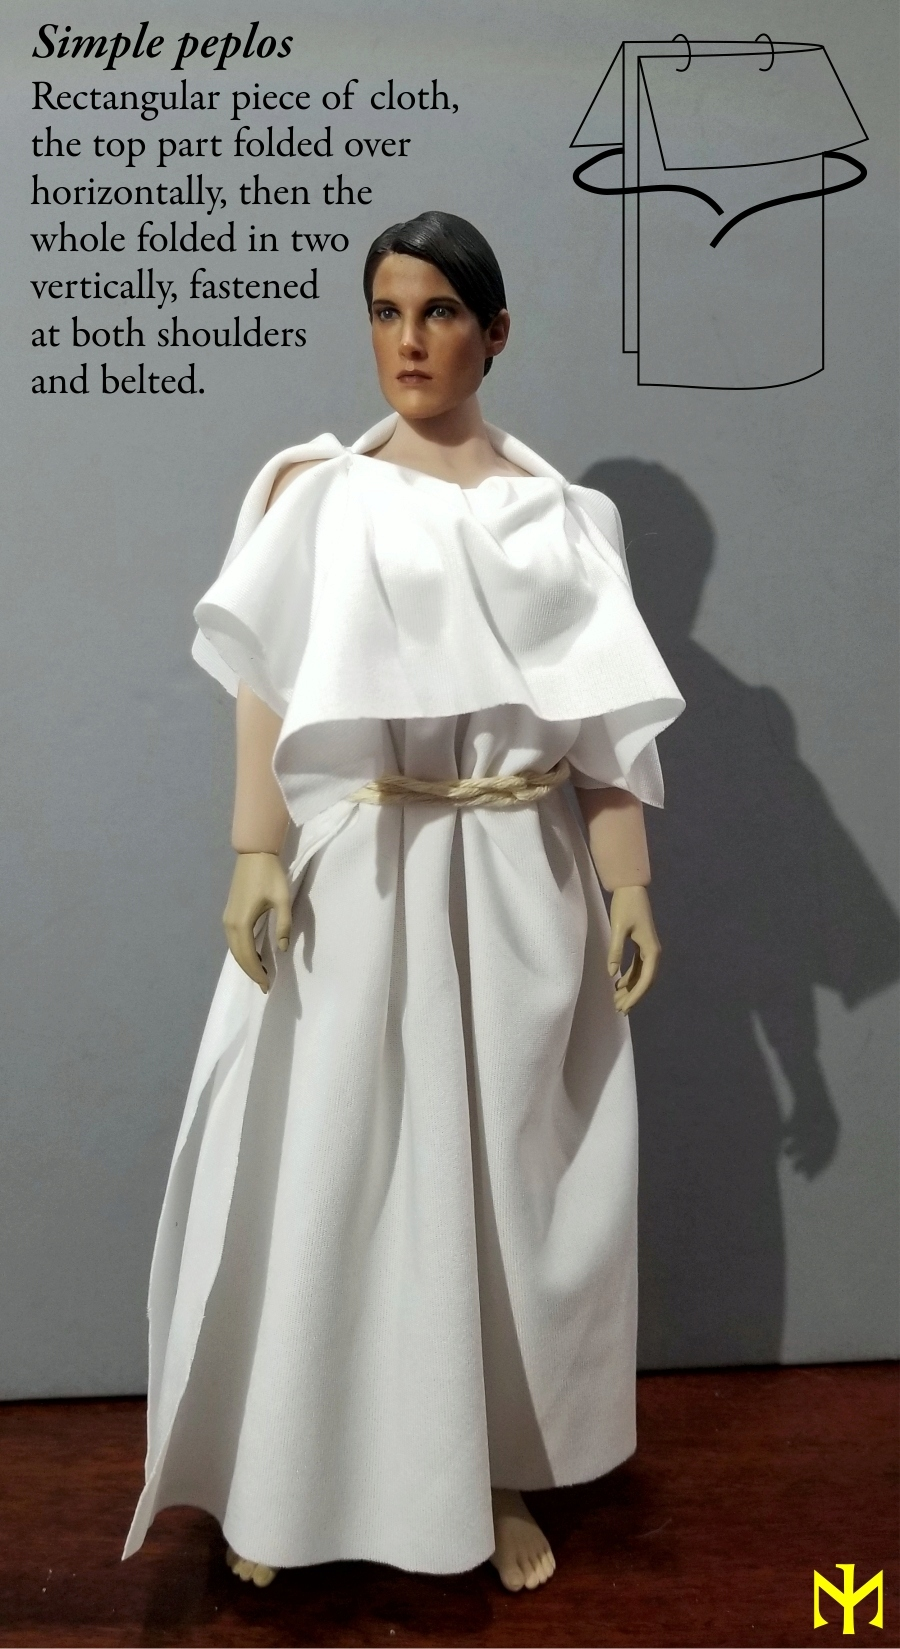 kitbash - Ancient Greek Clothing in Sixth Scale Cagc2110